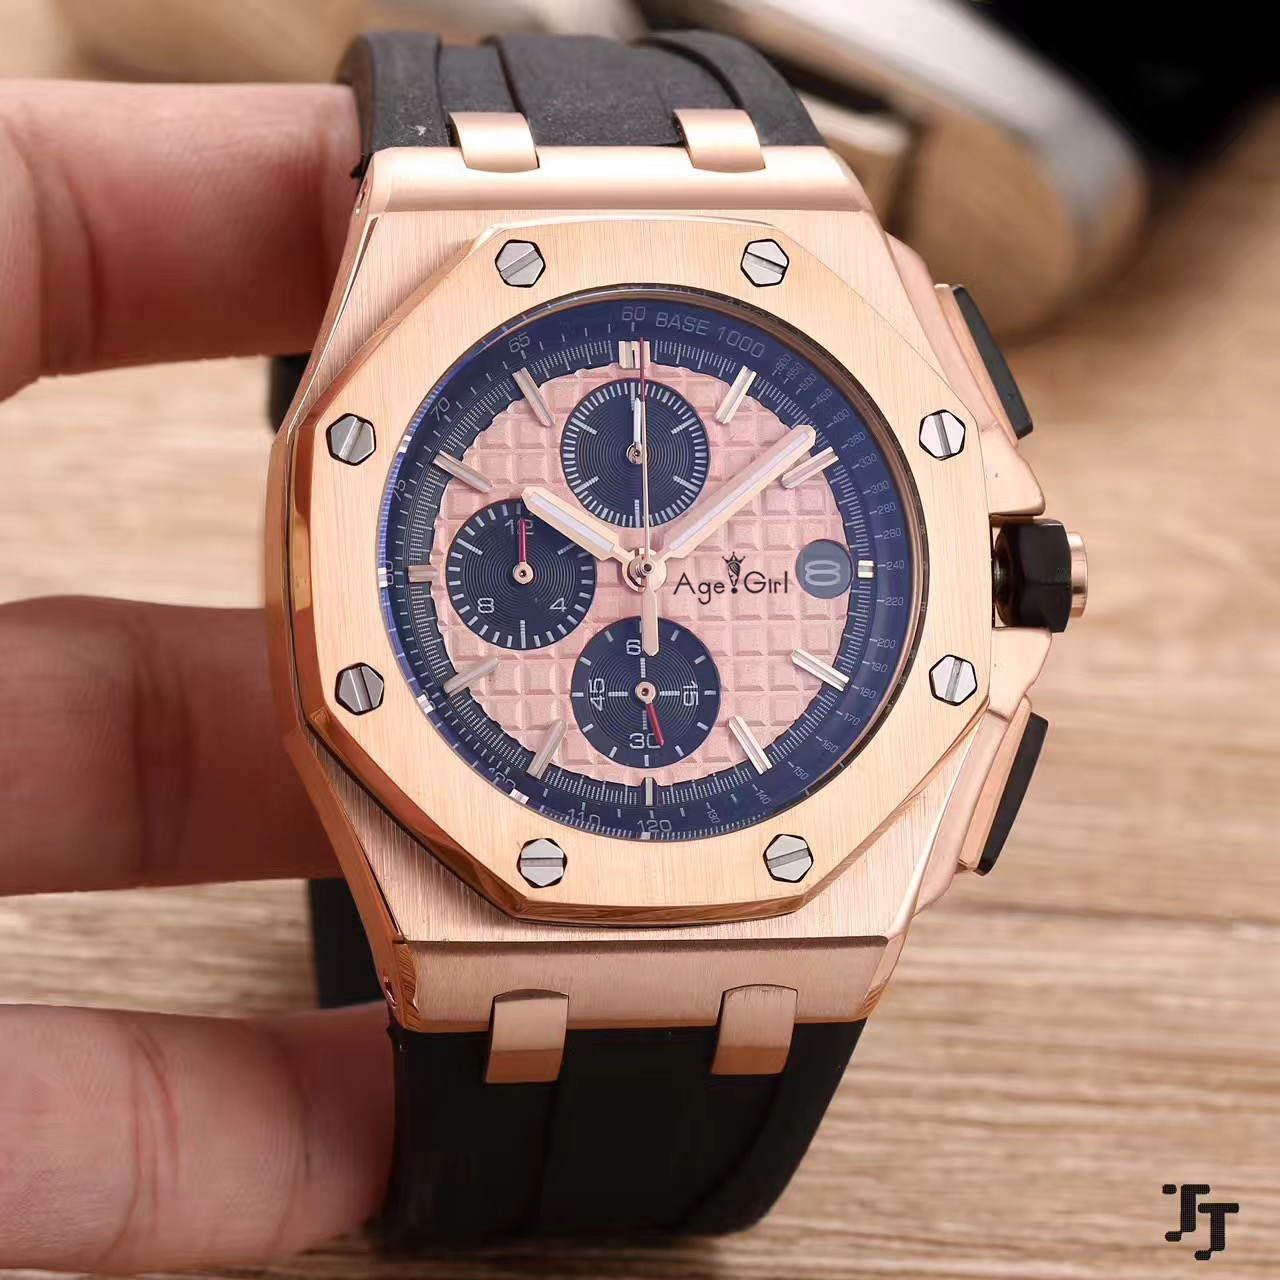 Luxury Brand New Chronograph Men Watch Stopwatch Lebron James Sapphire Watches Rose Gold White Blue Black Rubber Sport LimitedLuxury Brand New Chronograph Men Watch Stopwatch Lebron James Sapphire Watches Rose Gold White Blue Black Rubber Sport Limited